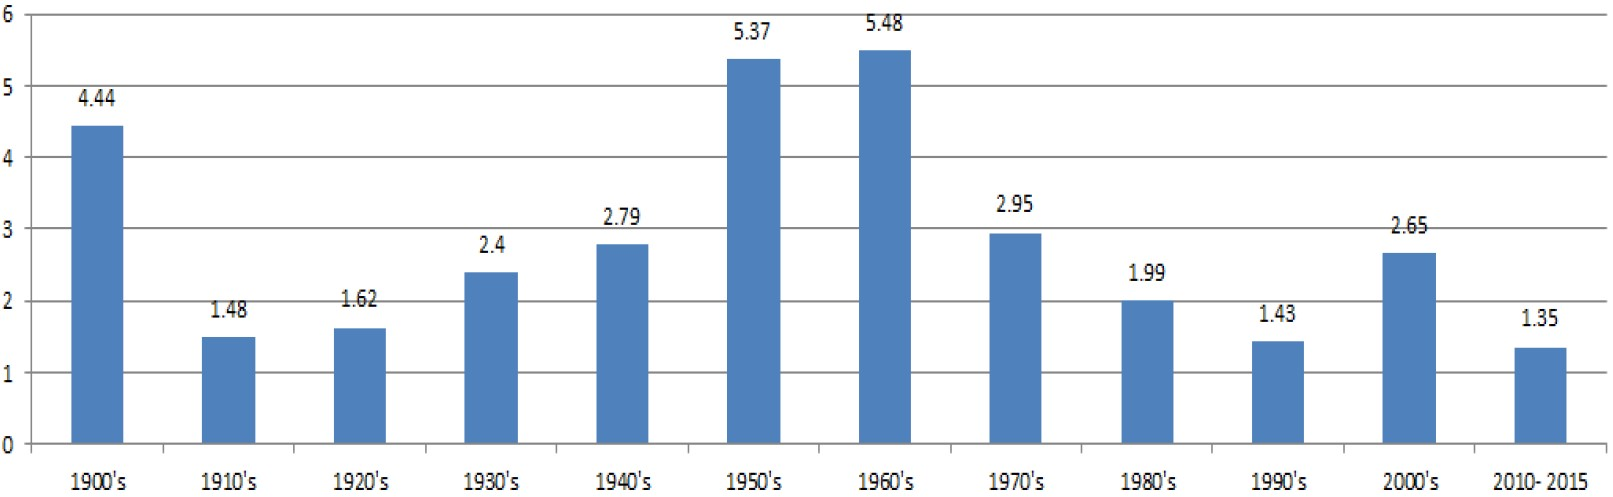 Exhibit 3: Annual energy production (mtoe) growth by decade and the 6 years 2010-15 (%)